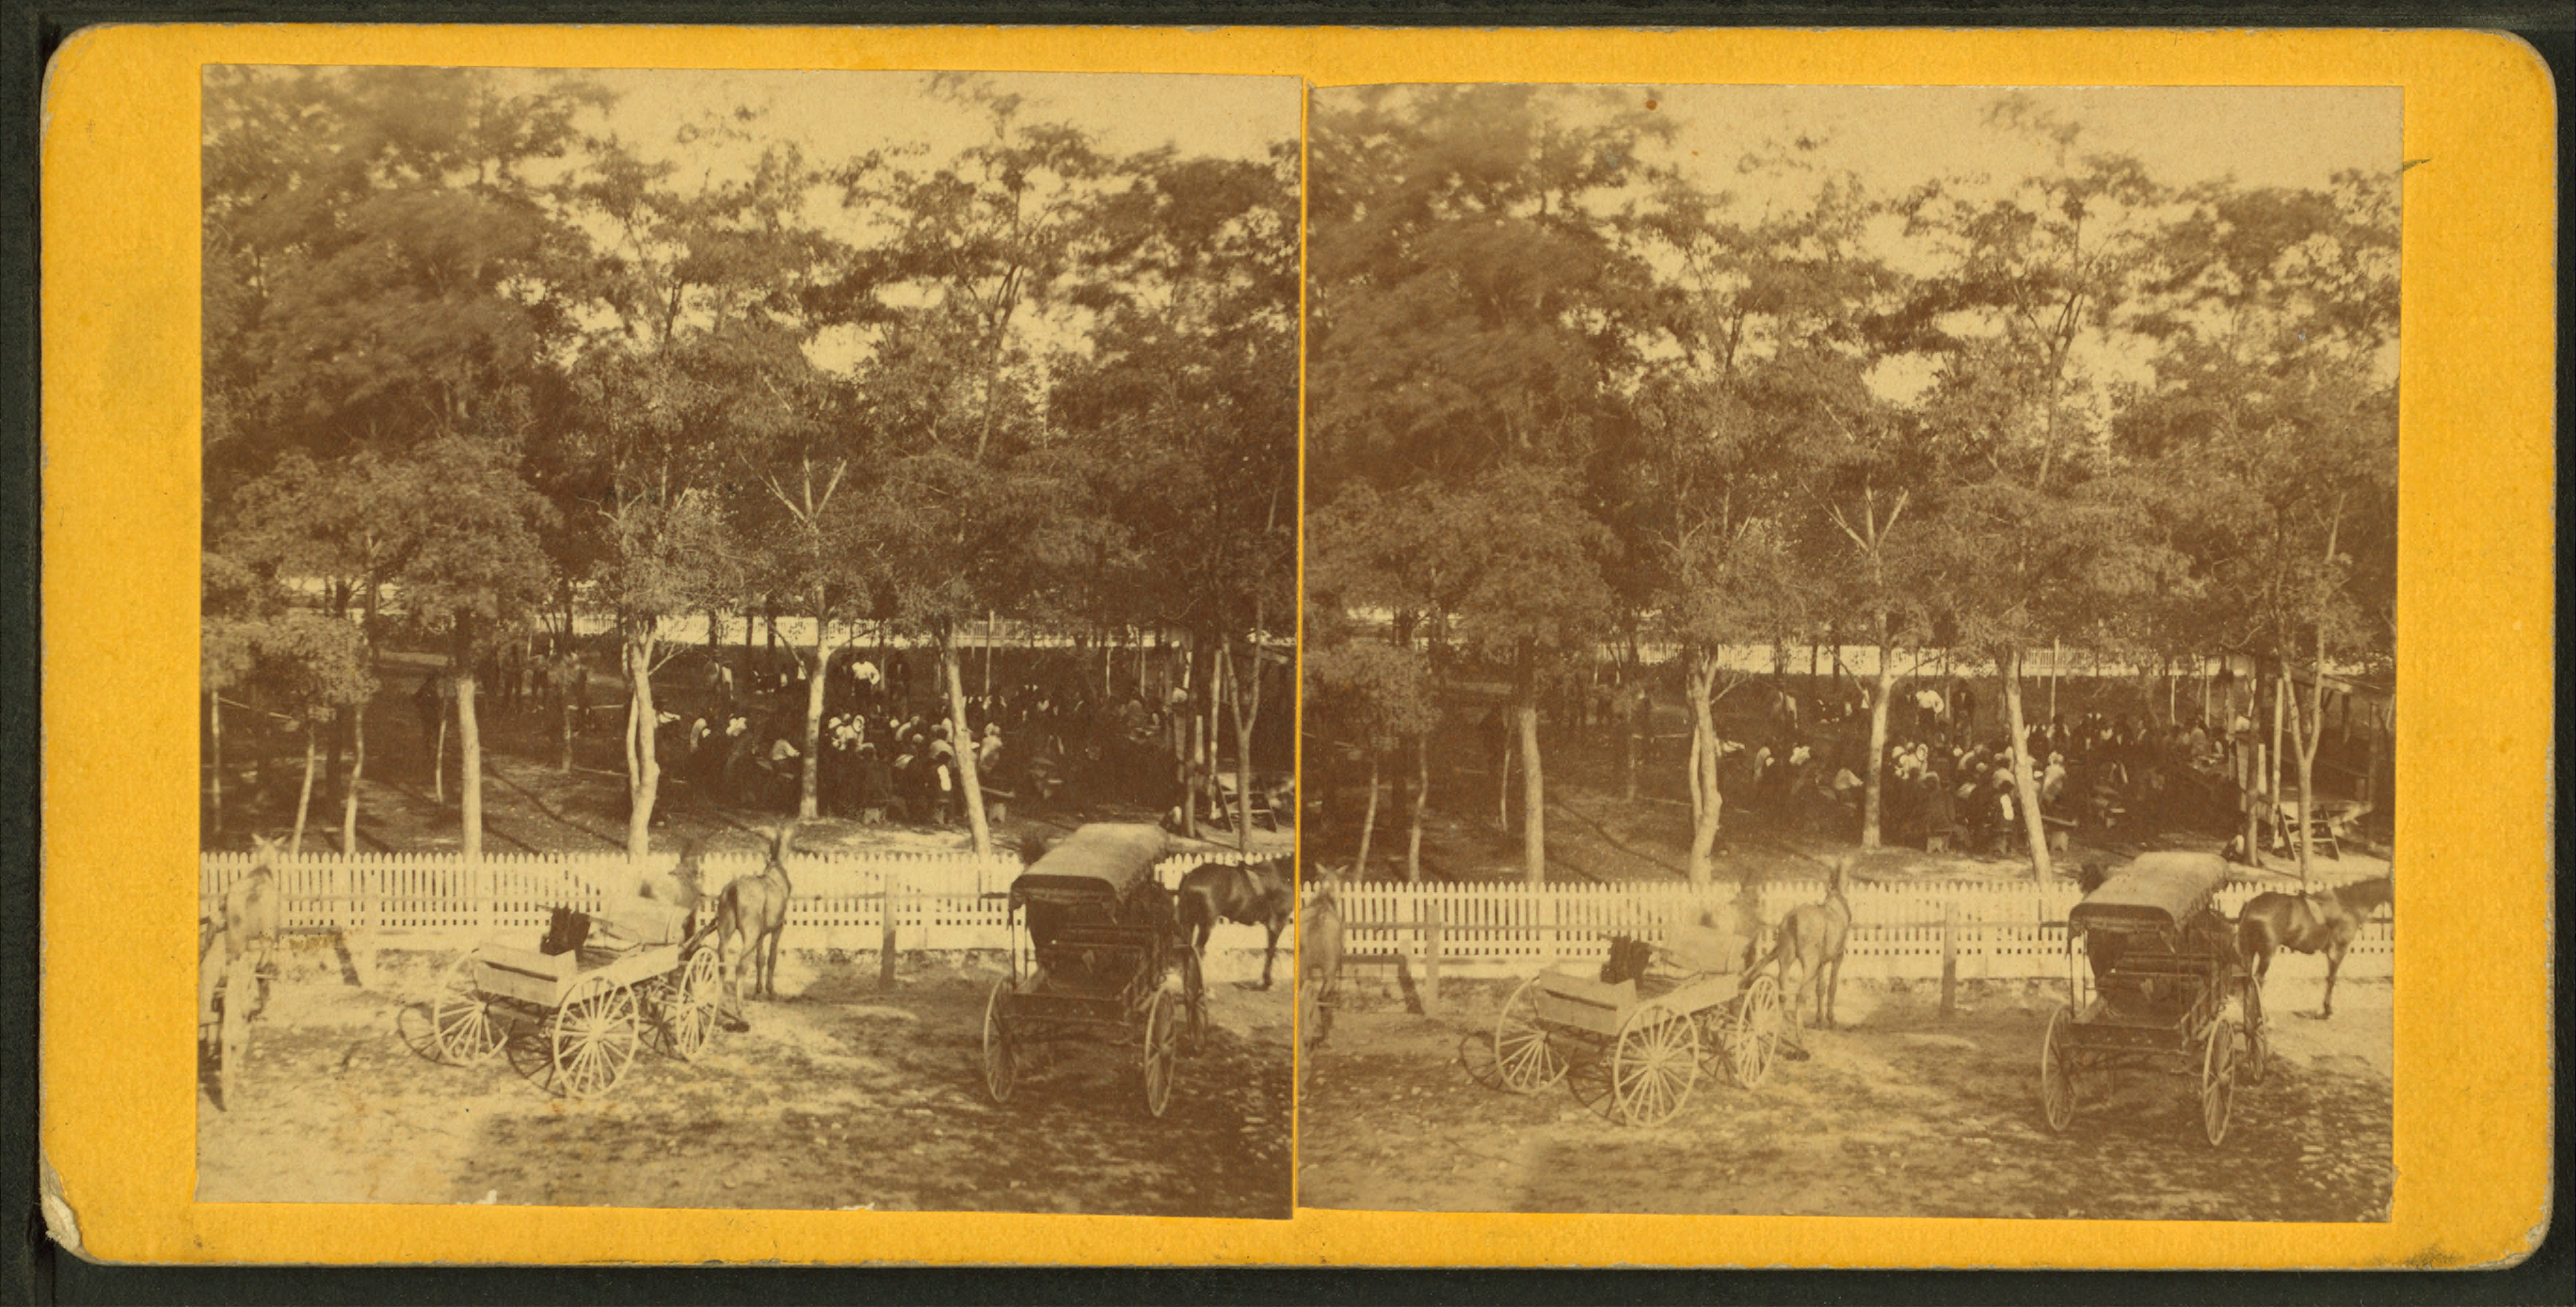 Orange Png Of People At A Park - File:People gathered at a park, wagons and buggies near picket ...